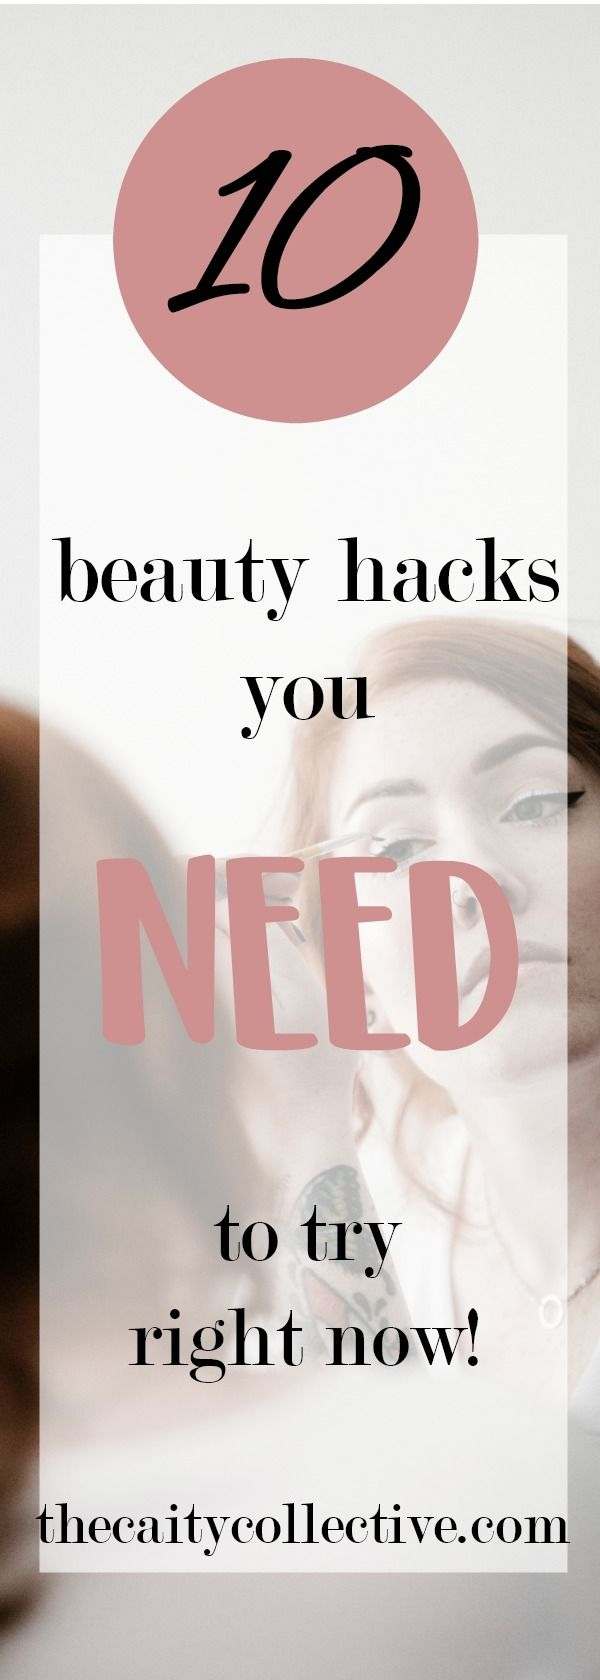 Photo of 10 Beauty Hacks you NEED to try right now!